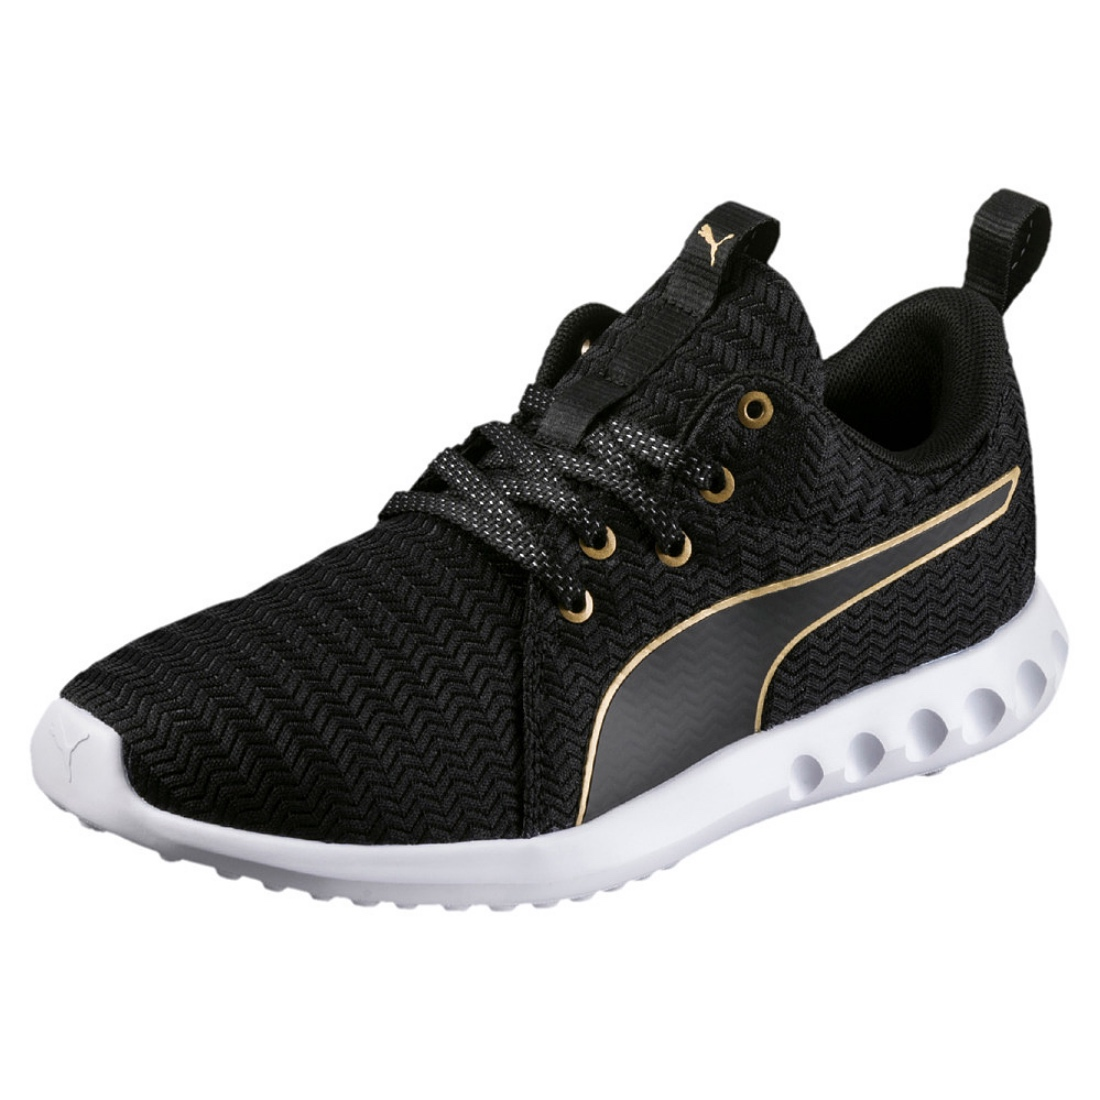 Details about Puma Carson 2 Metallic Wn's Ladies Running Shoes Trainers 190044 Black